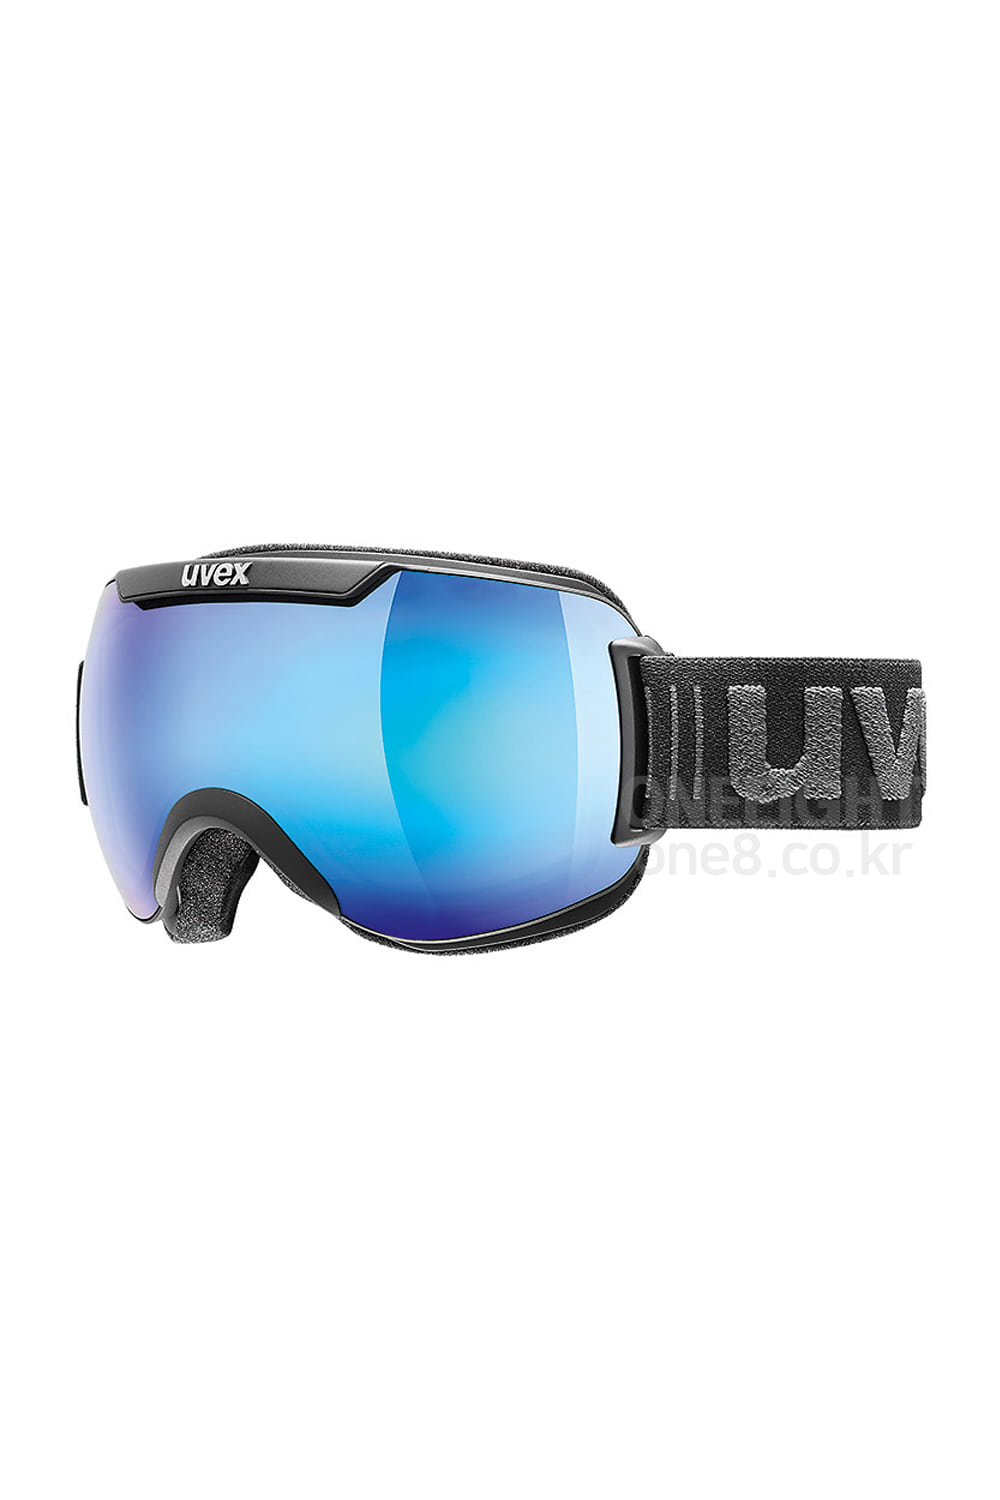 우벡스 고글 다운힐 2000 FM UVEX_(07) UVEX DOWNHILL 2000 FM-ASIAN FIT_BLACK MAT/MIRROR BLUE-S3_아시안핏/주야겸용_DBUV807BK